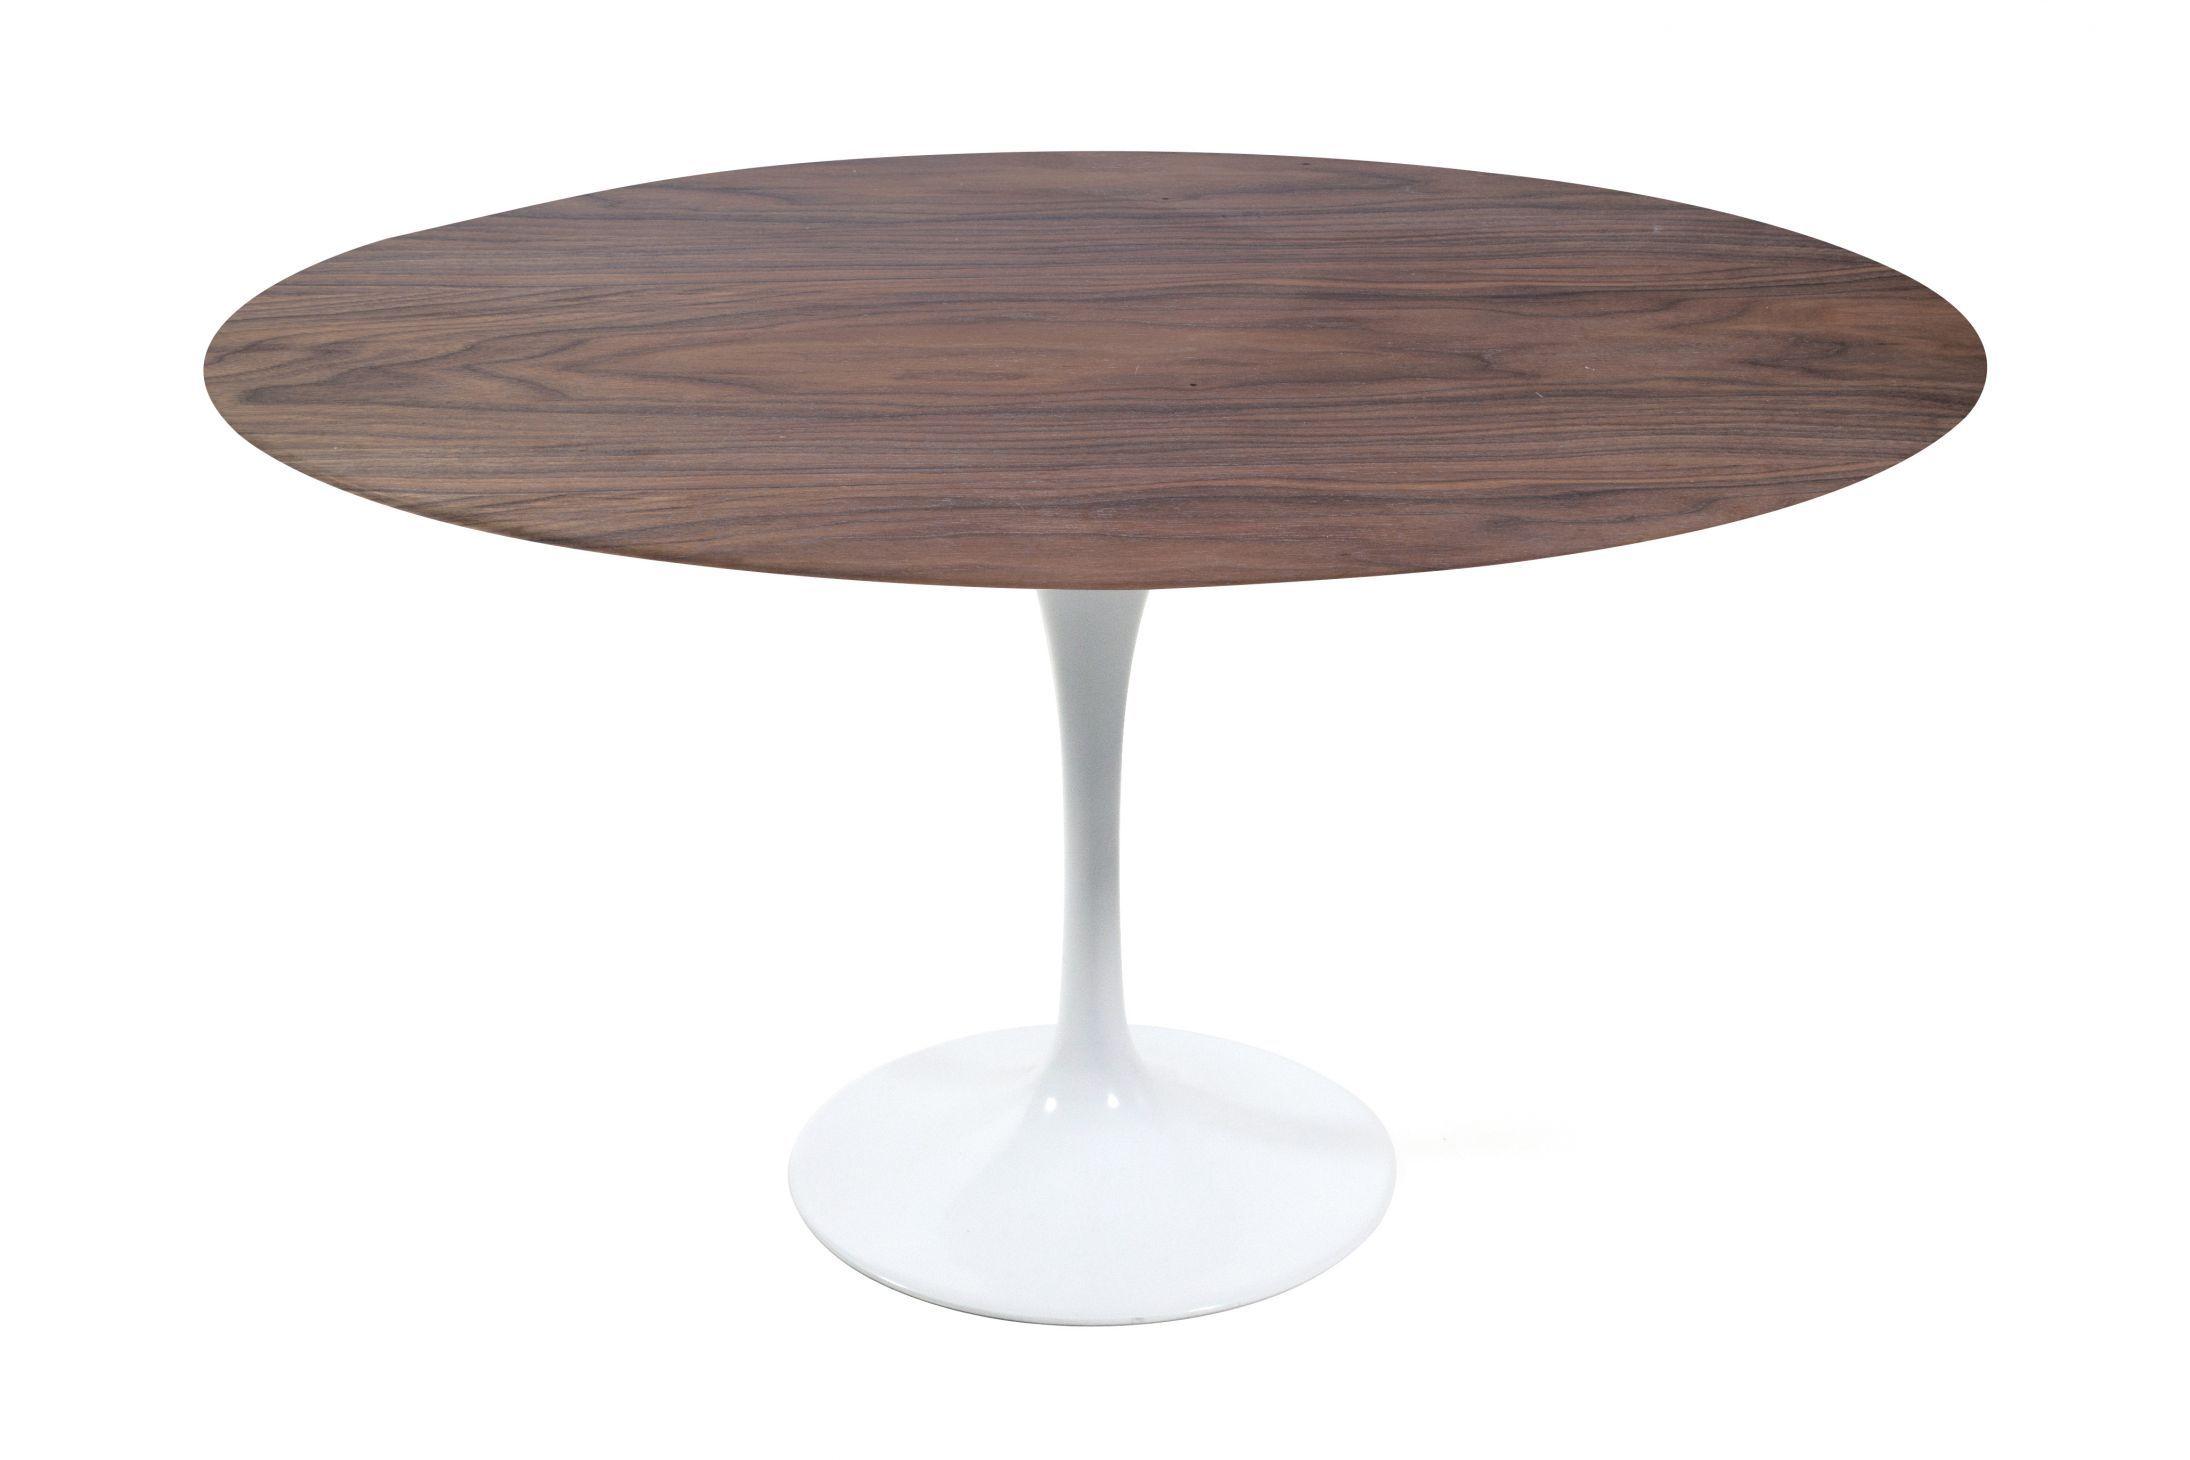 This Iconic Tulip Table Is A Rove Concepts Exclusive Featuring - Tulip table sizes